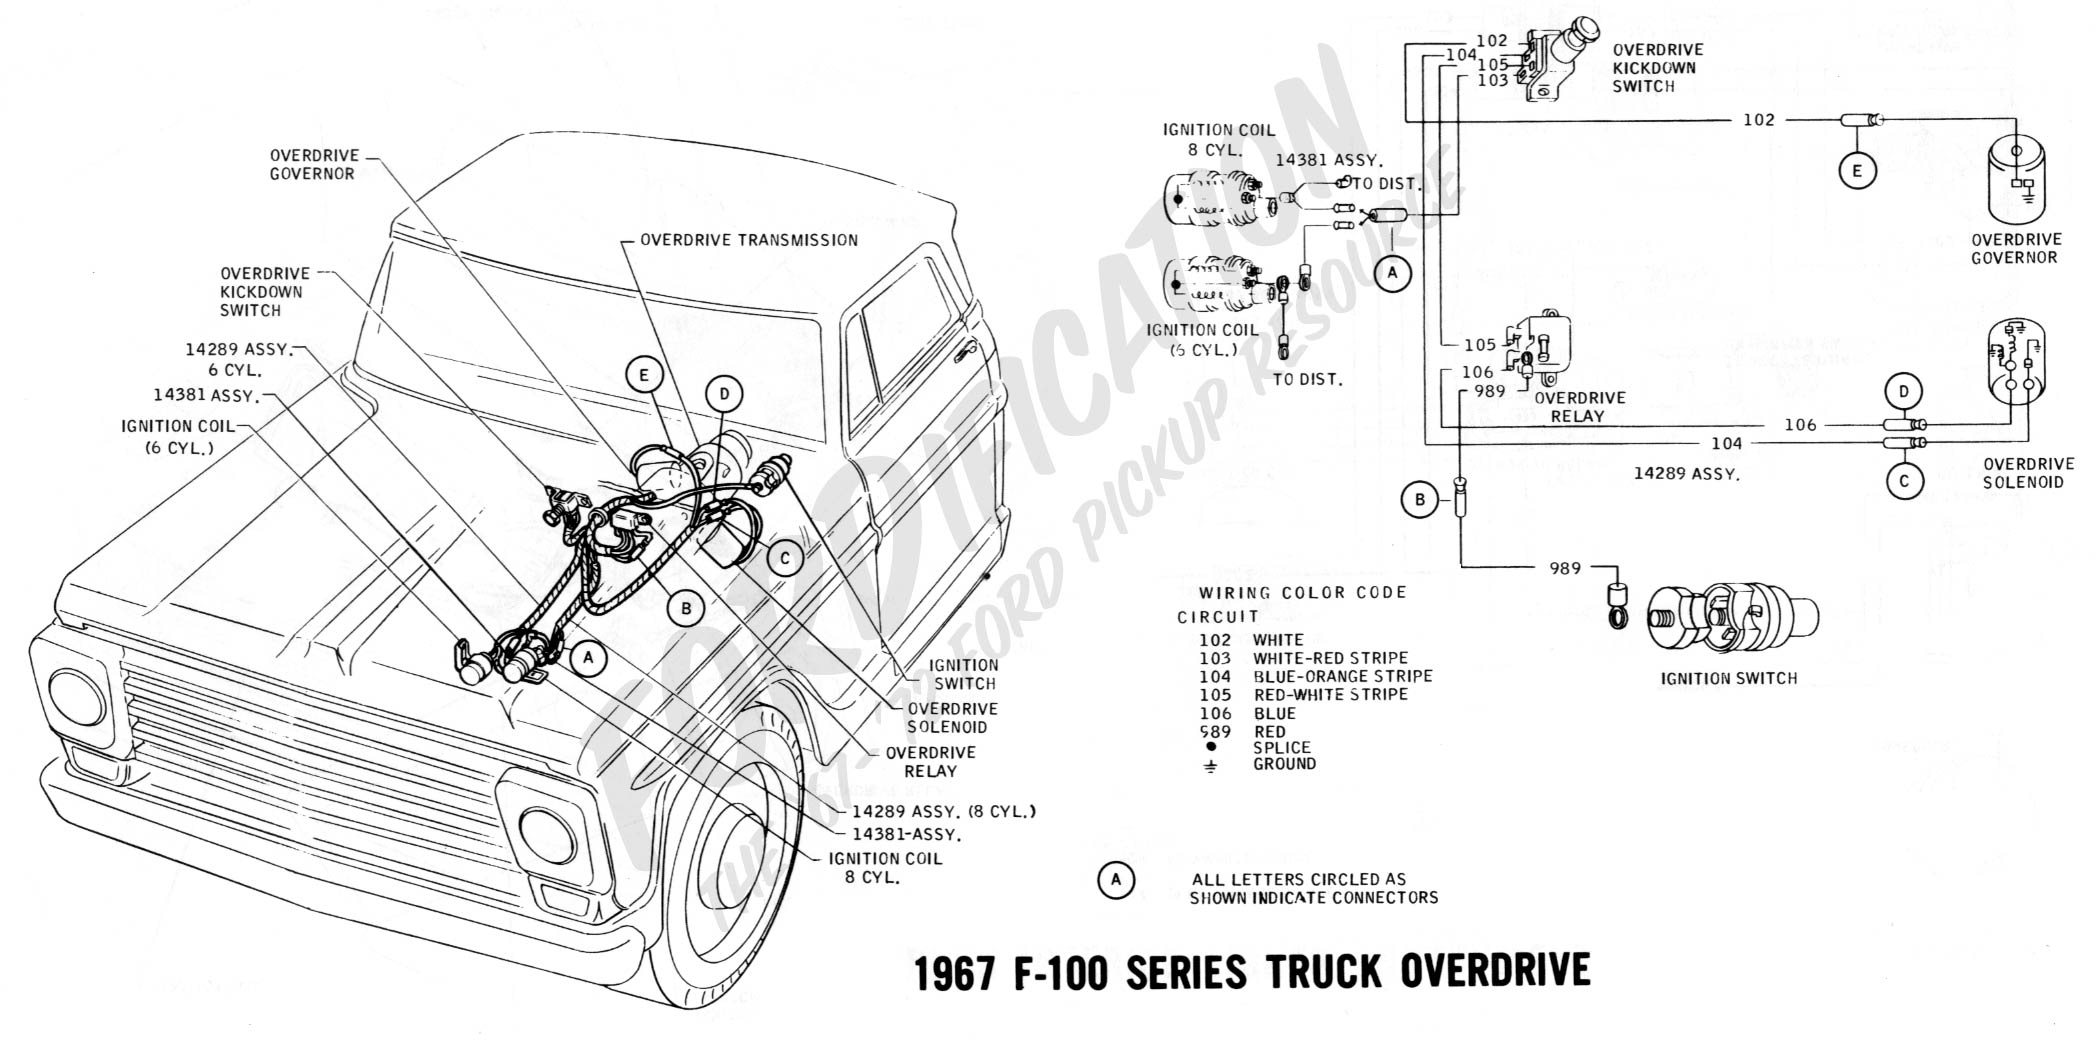 1967 Ford Mustang Ignition Wiring Diagram Block 1968 Truck Technical Drawings And Schematics Section H Diagrams Wire Colors